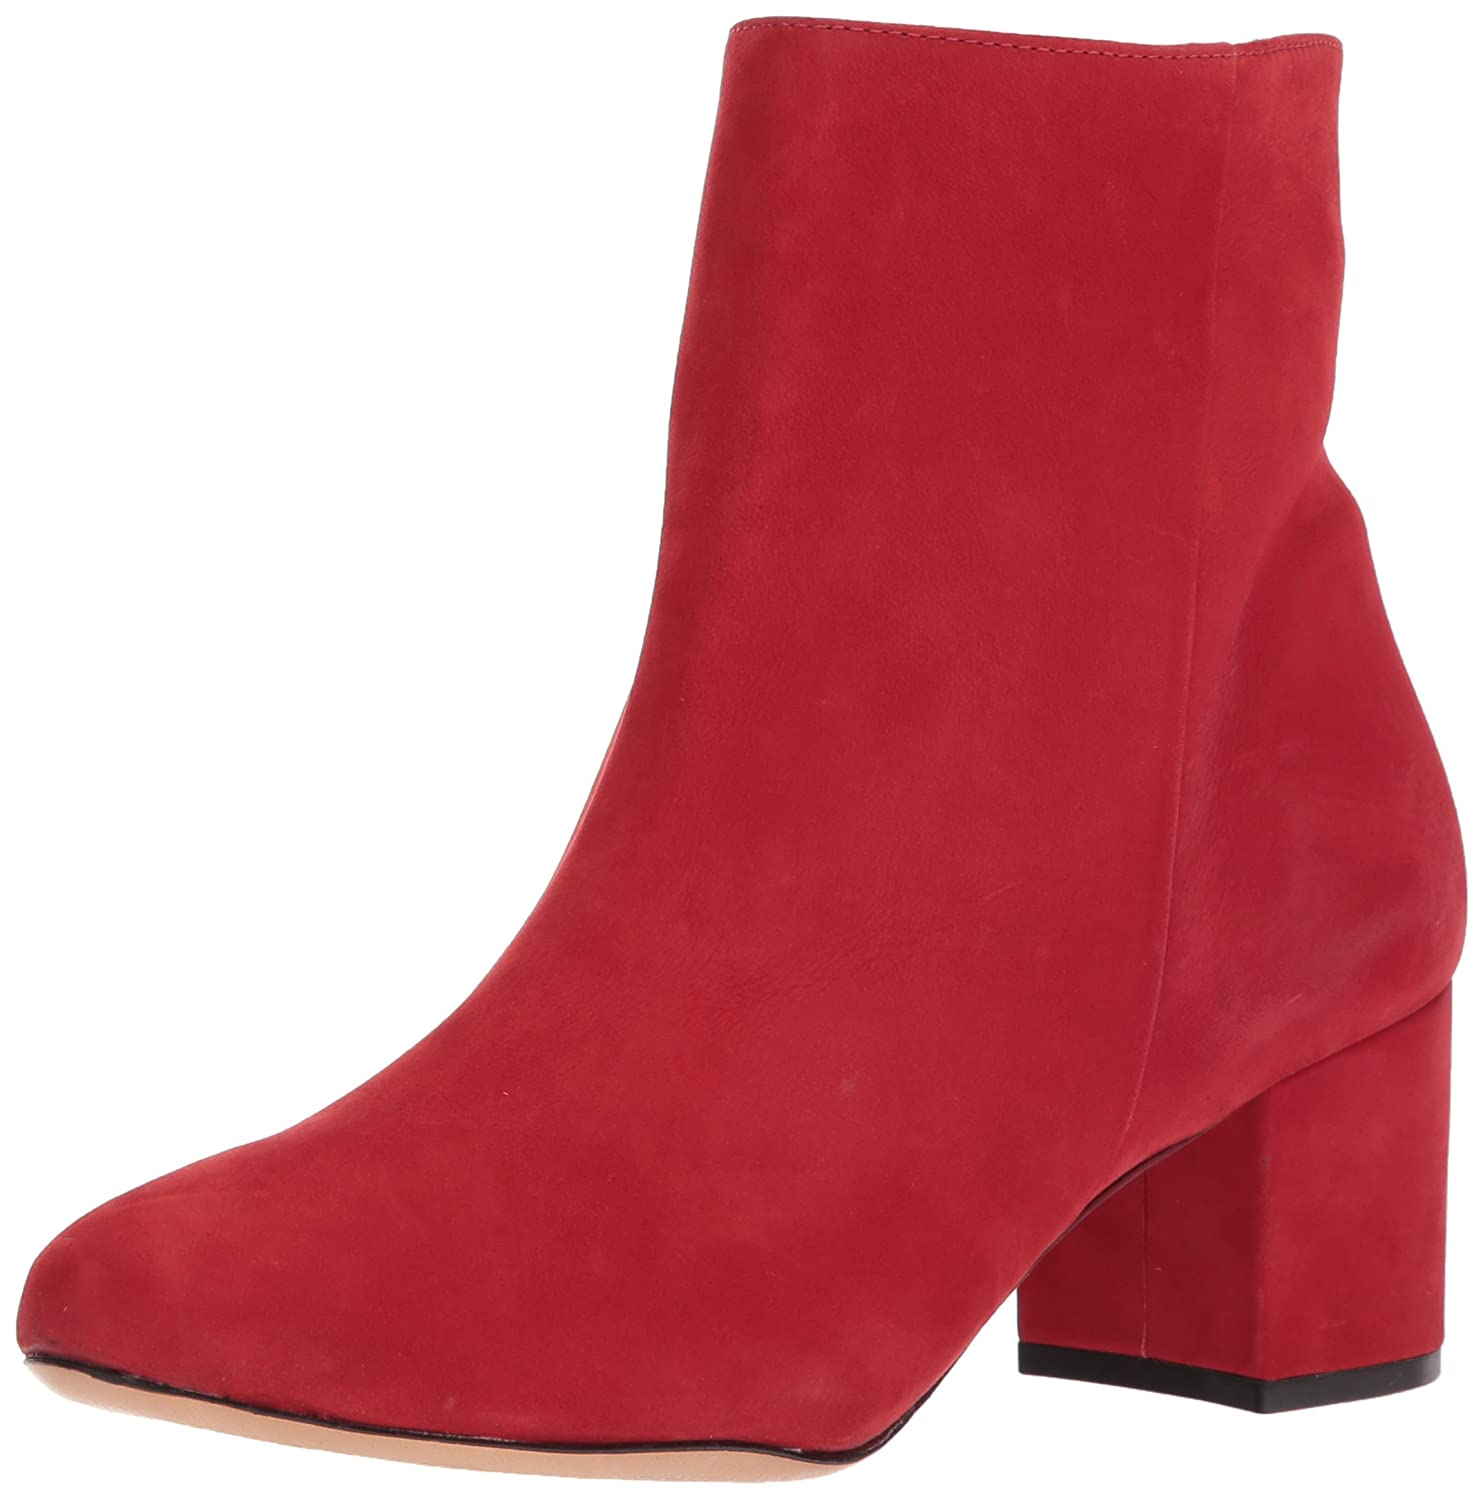 SCHUTZ Women's Lupe Ankle Boot B071DZQZTD 7.5 B(M) US|Scarlet